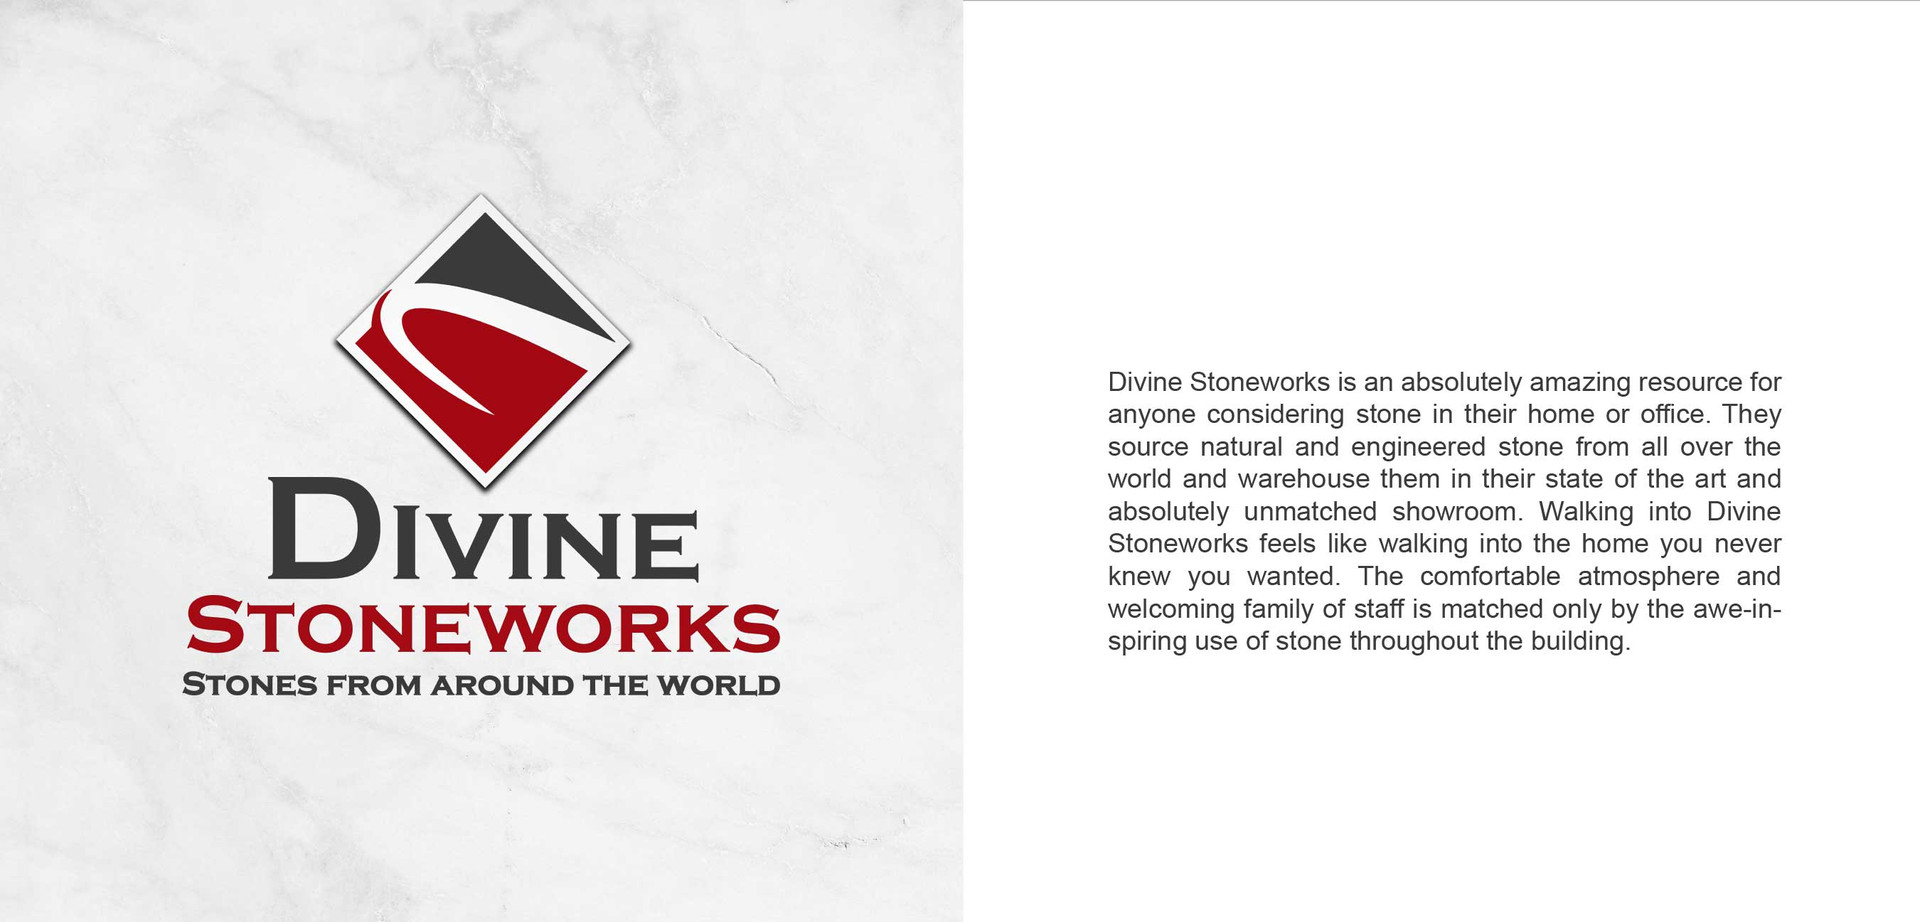 about divine stoneworks